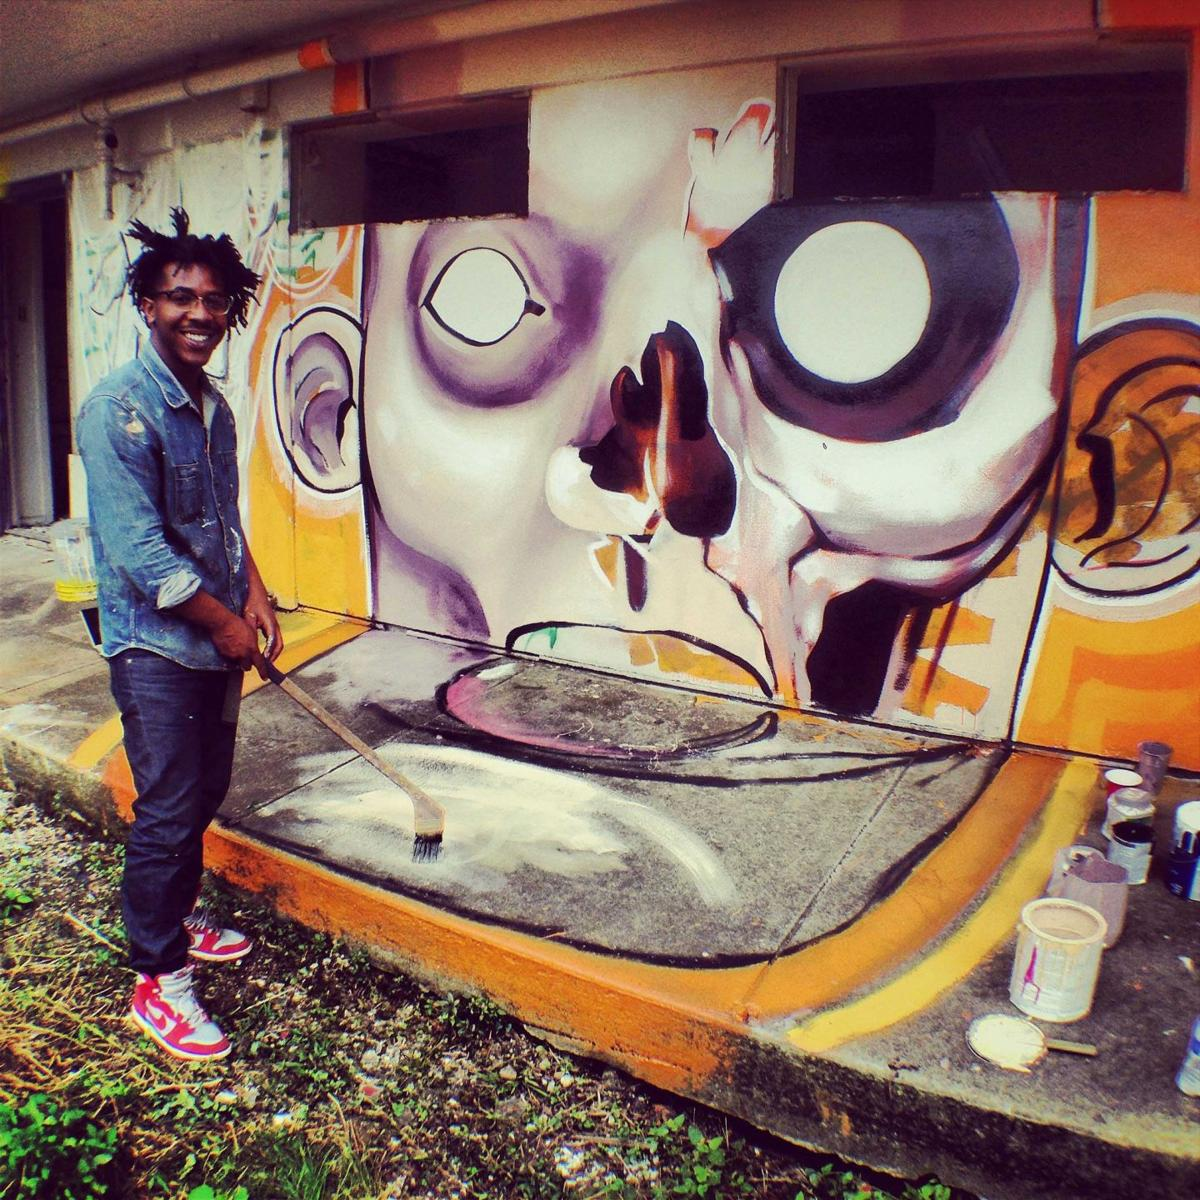 ExhibitBE graffiti site hosts poet protest from 1 to 3 on Saturday, Dec. 13